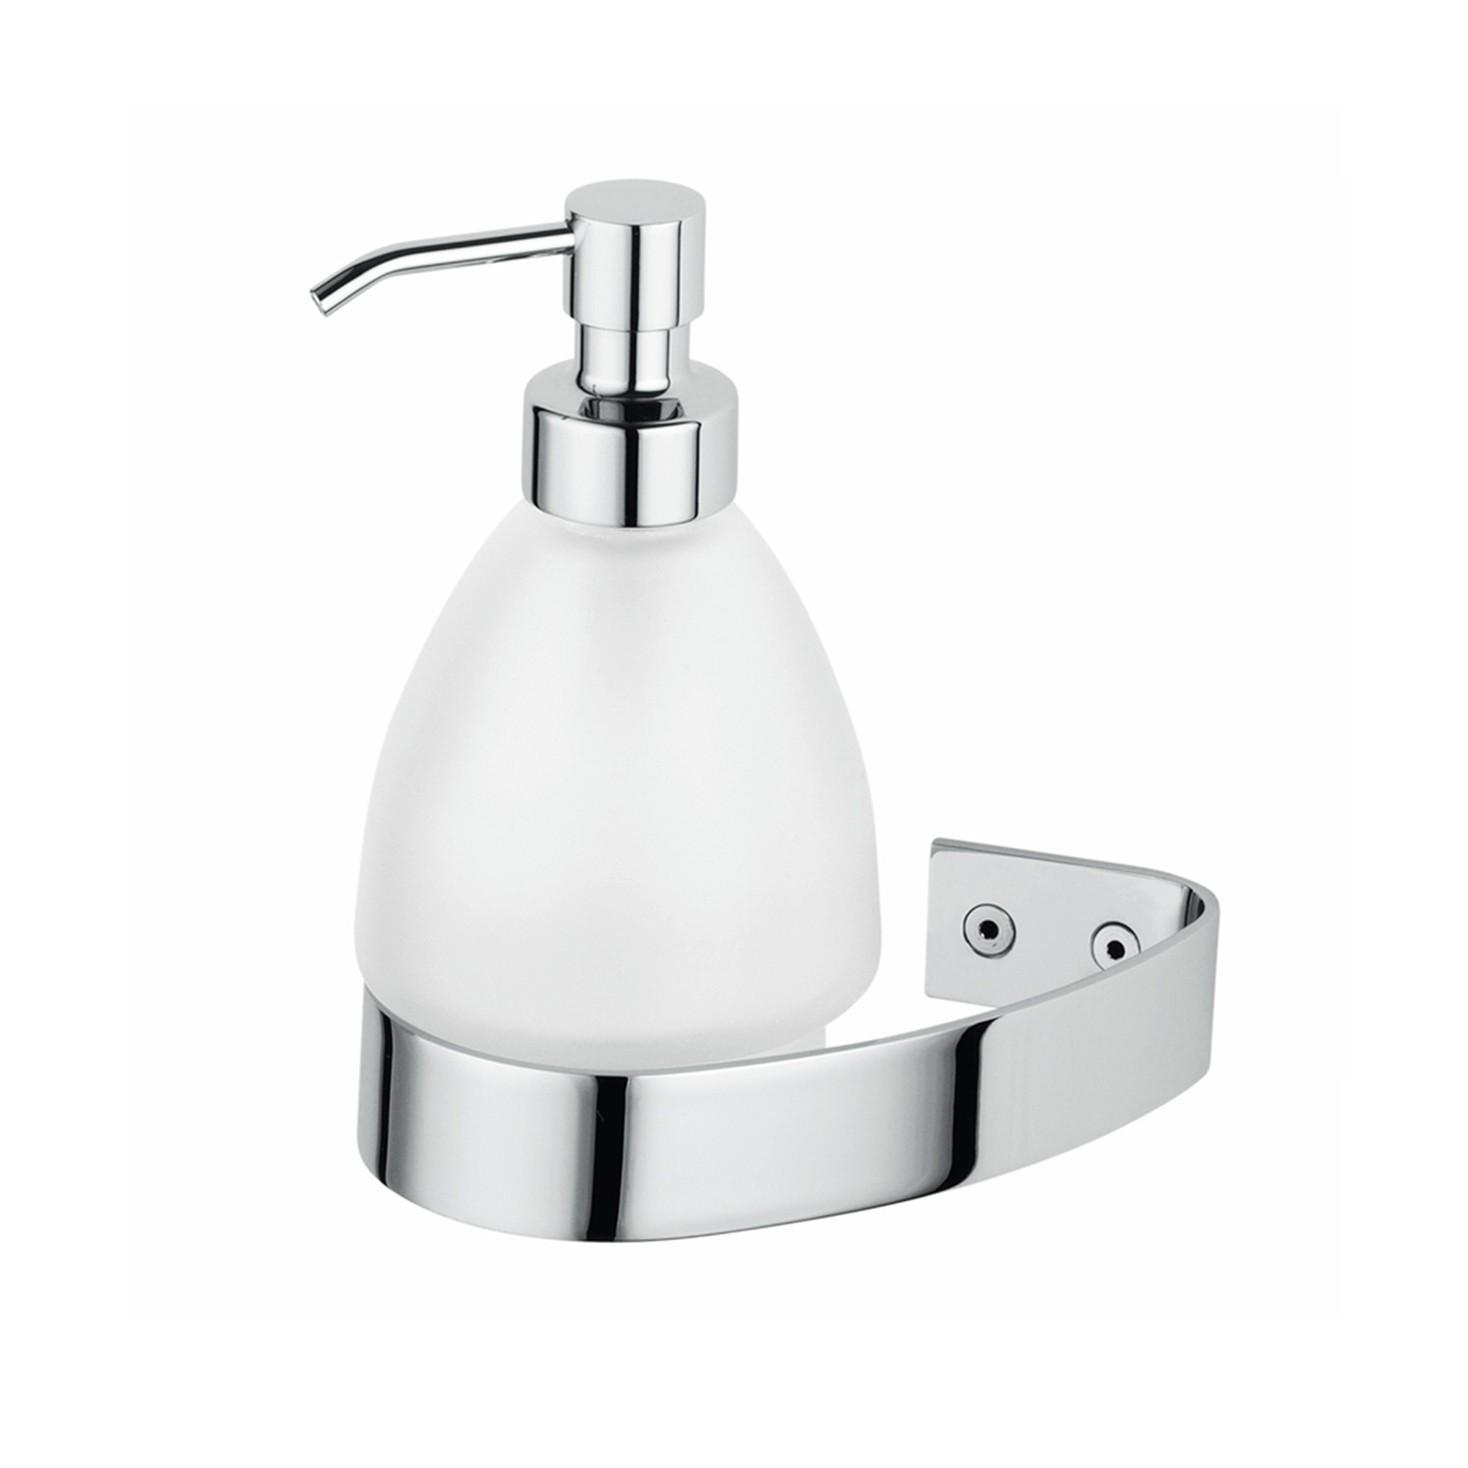 Bathroom Soap Dispensers Wall Mounted New